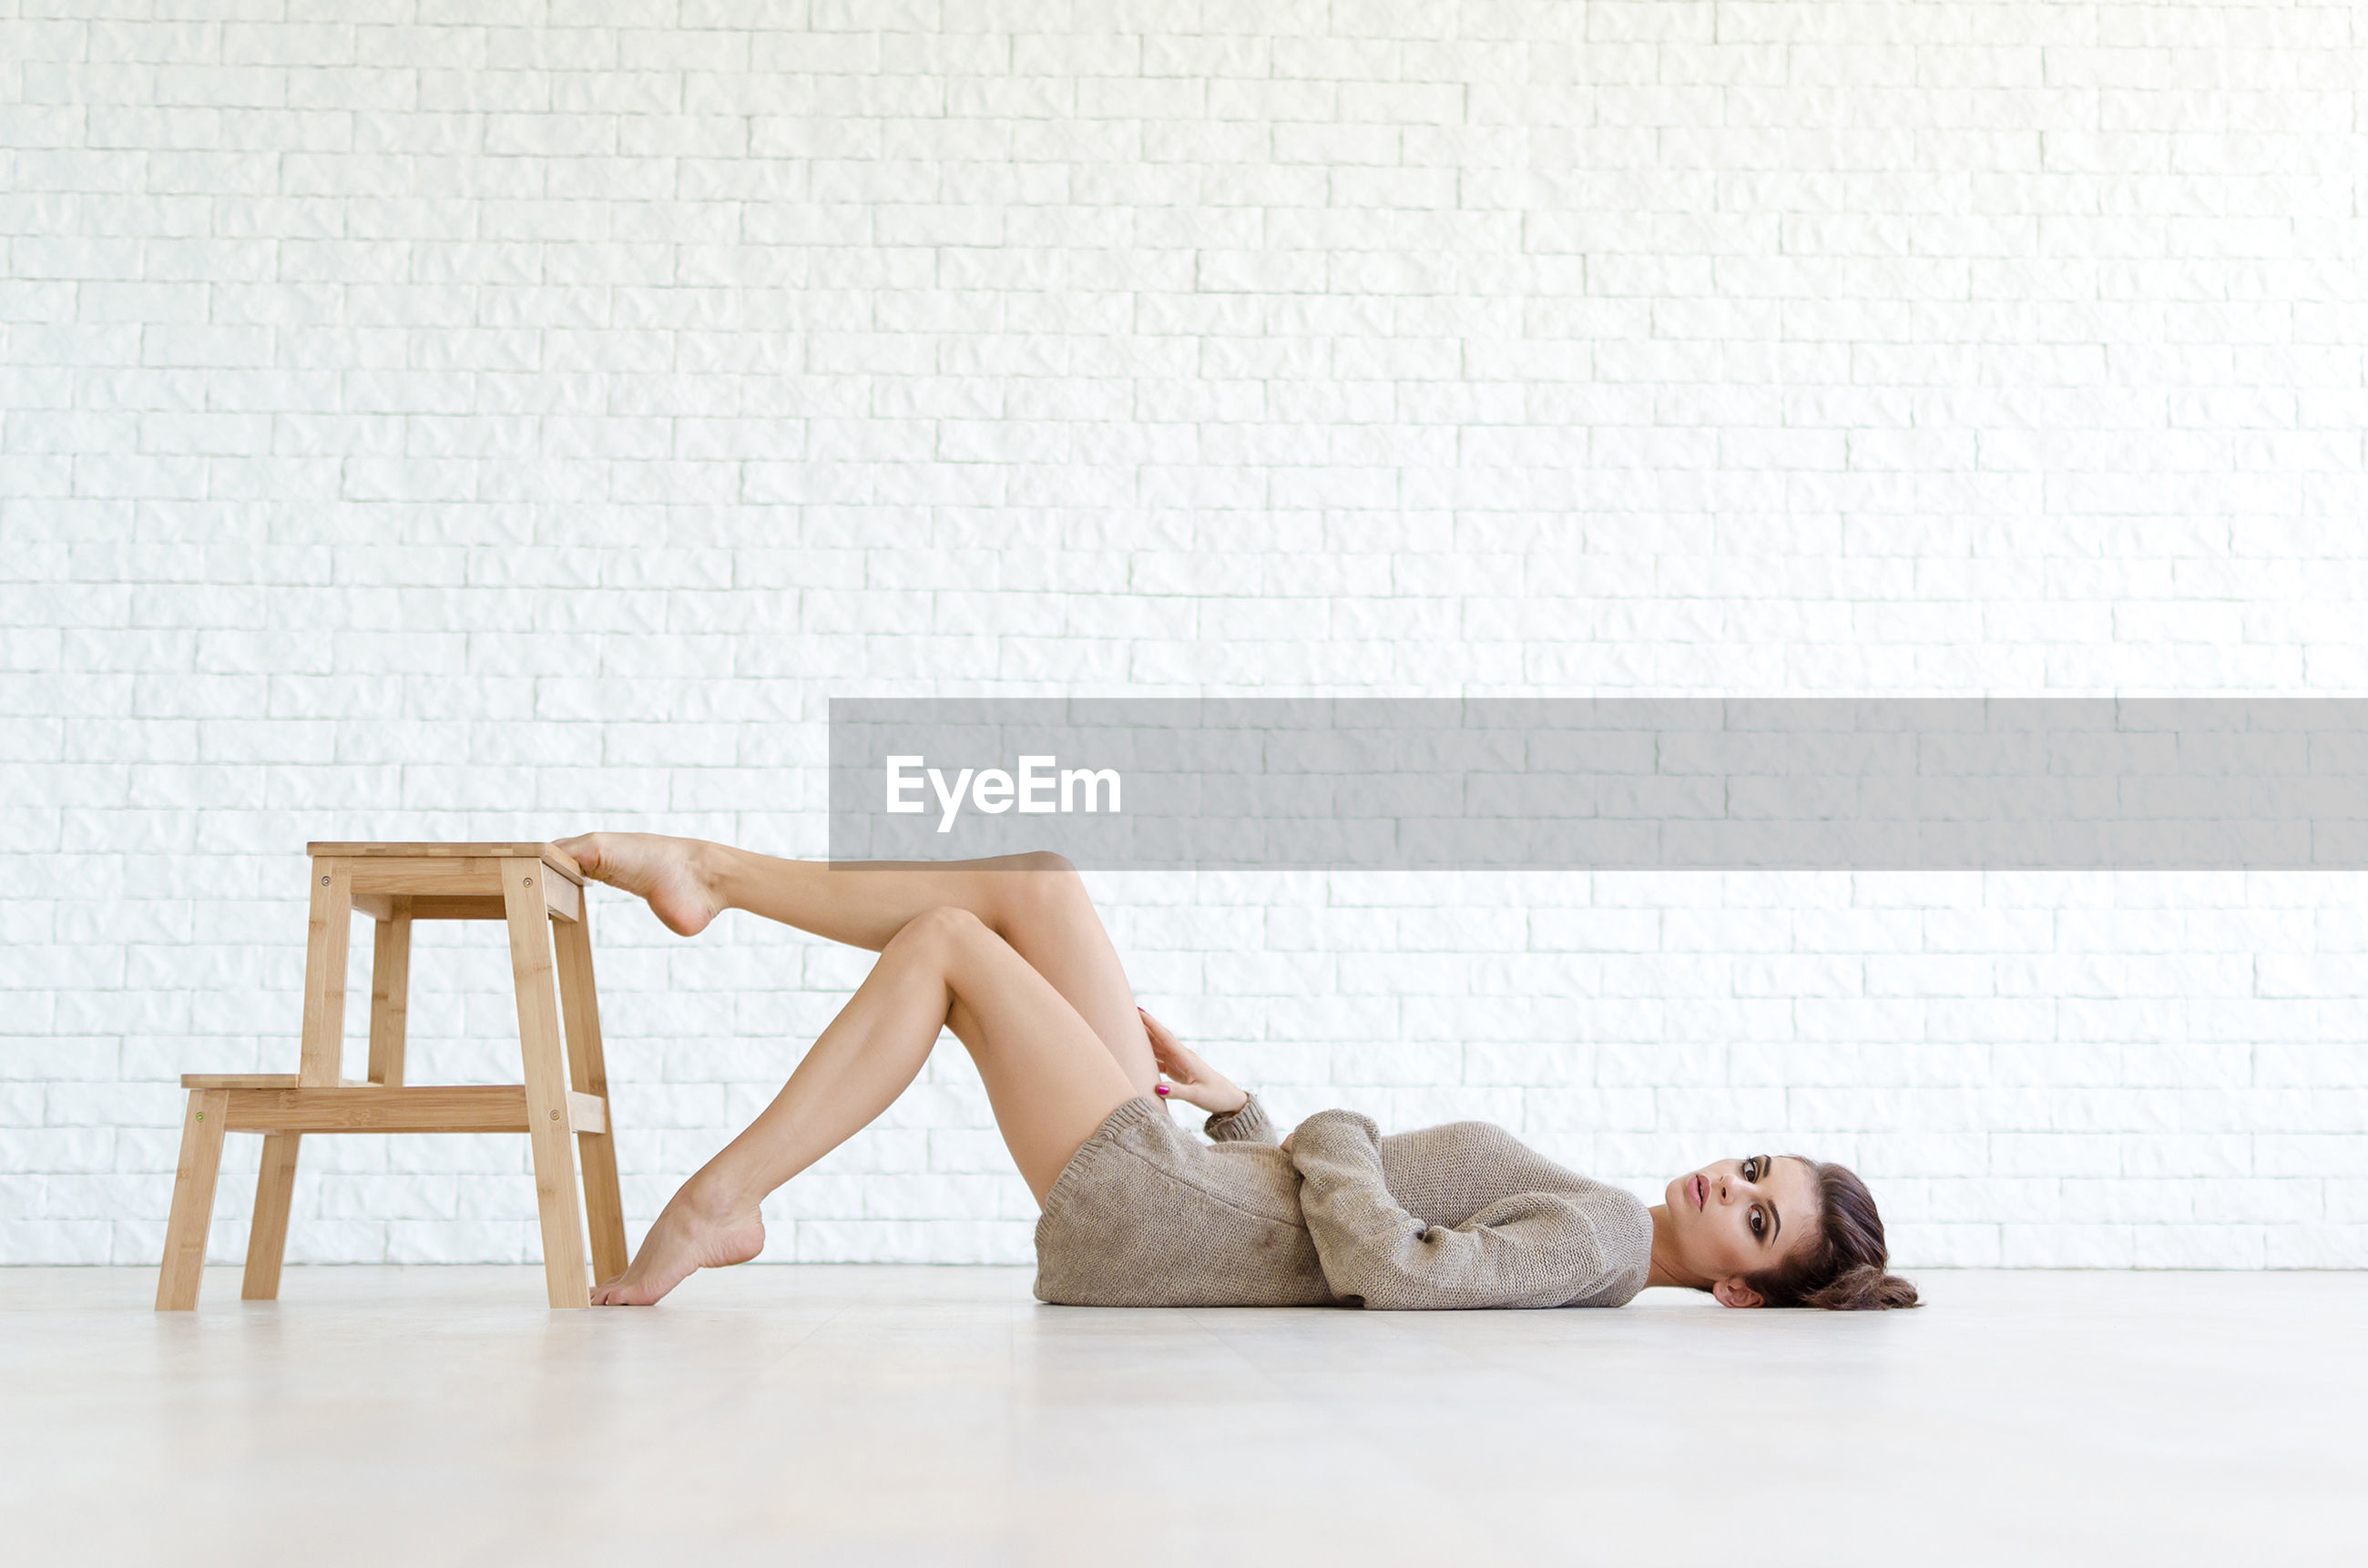 SIDE VIEW OF WOMAN RESTING ON SEAT AGAINST TILED FLOOR